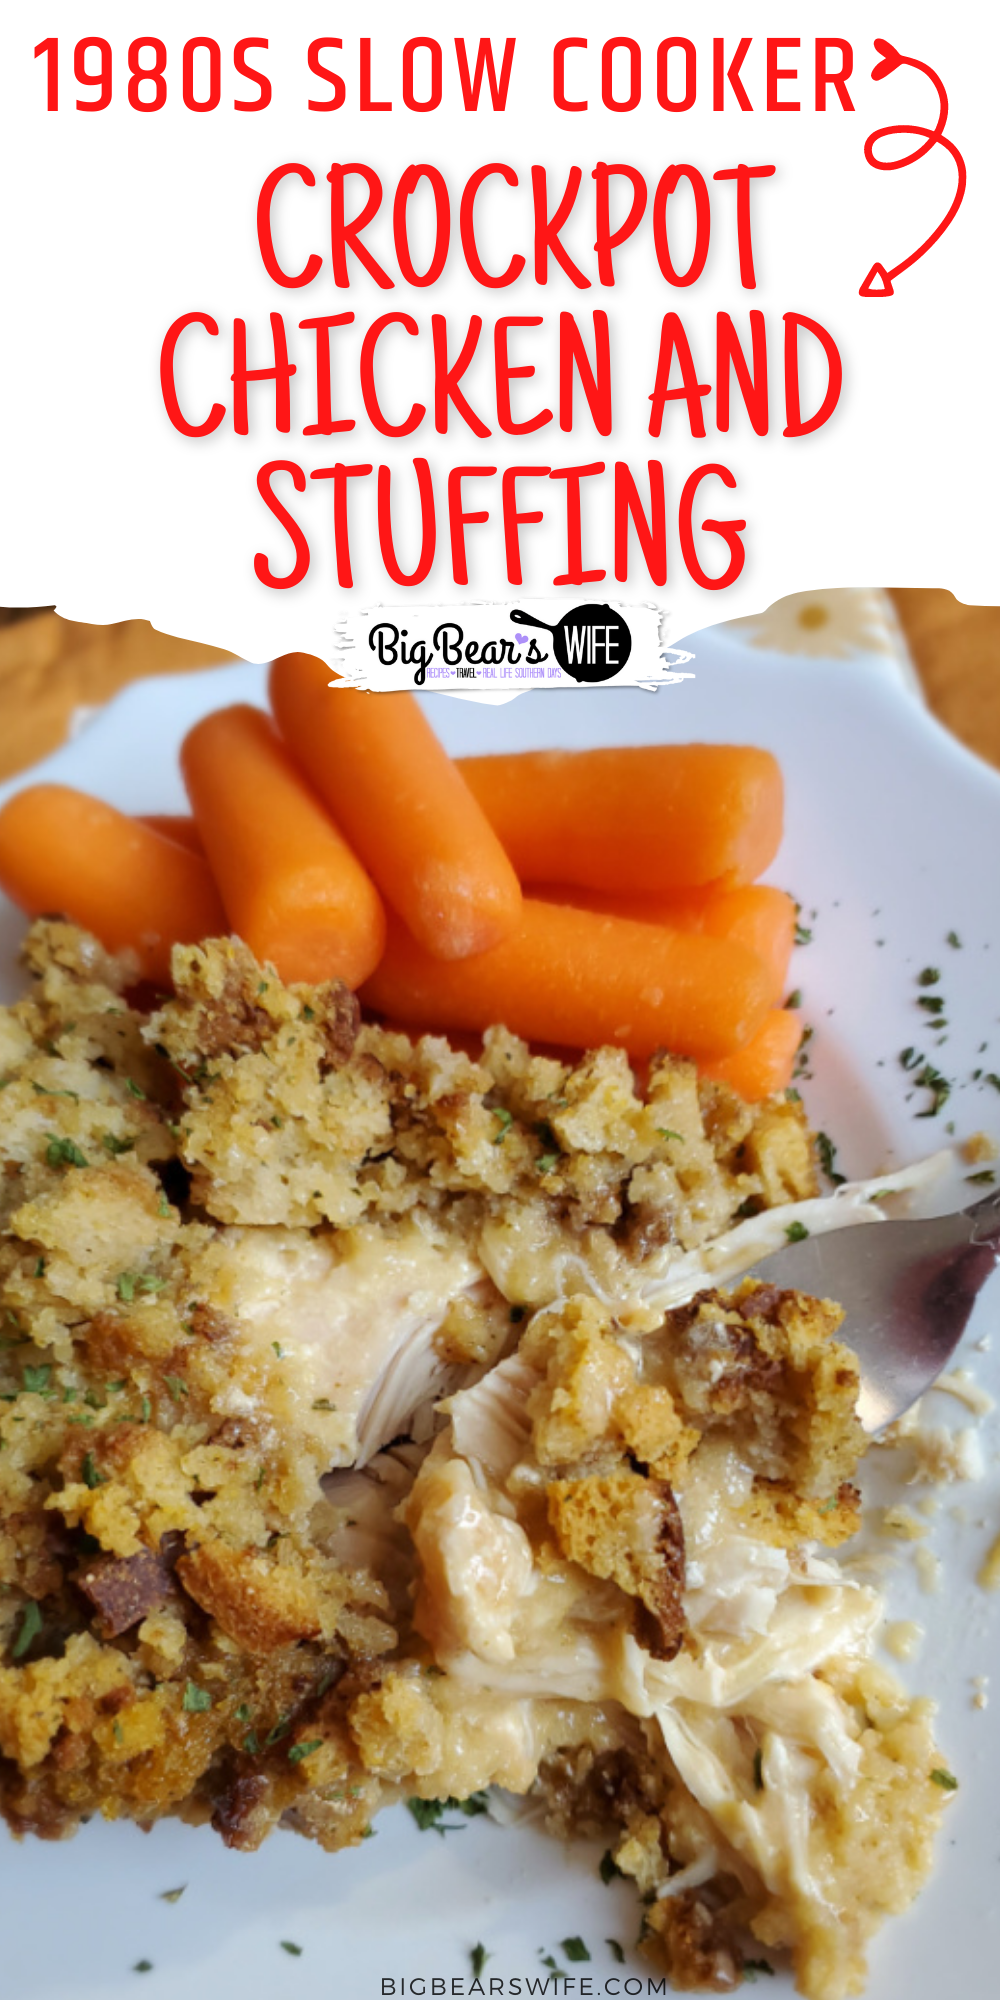 This Slow Cooker Crockpot Chicken and Stuffing recipe reminds me of a meal that my mom would have made when I was growing up! Toss a few easy ingredients into the slow cooker and dinner will be ready without much work at all! This 1980s Slow Cooker Chicken and Stuffing only takes about 5 minutes to toss together! 